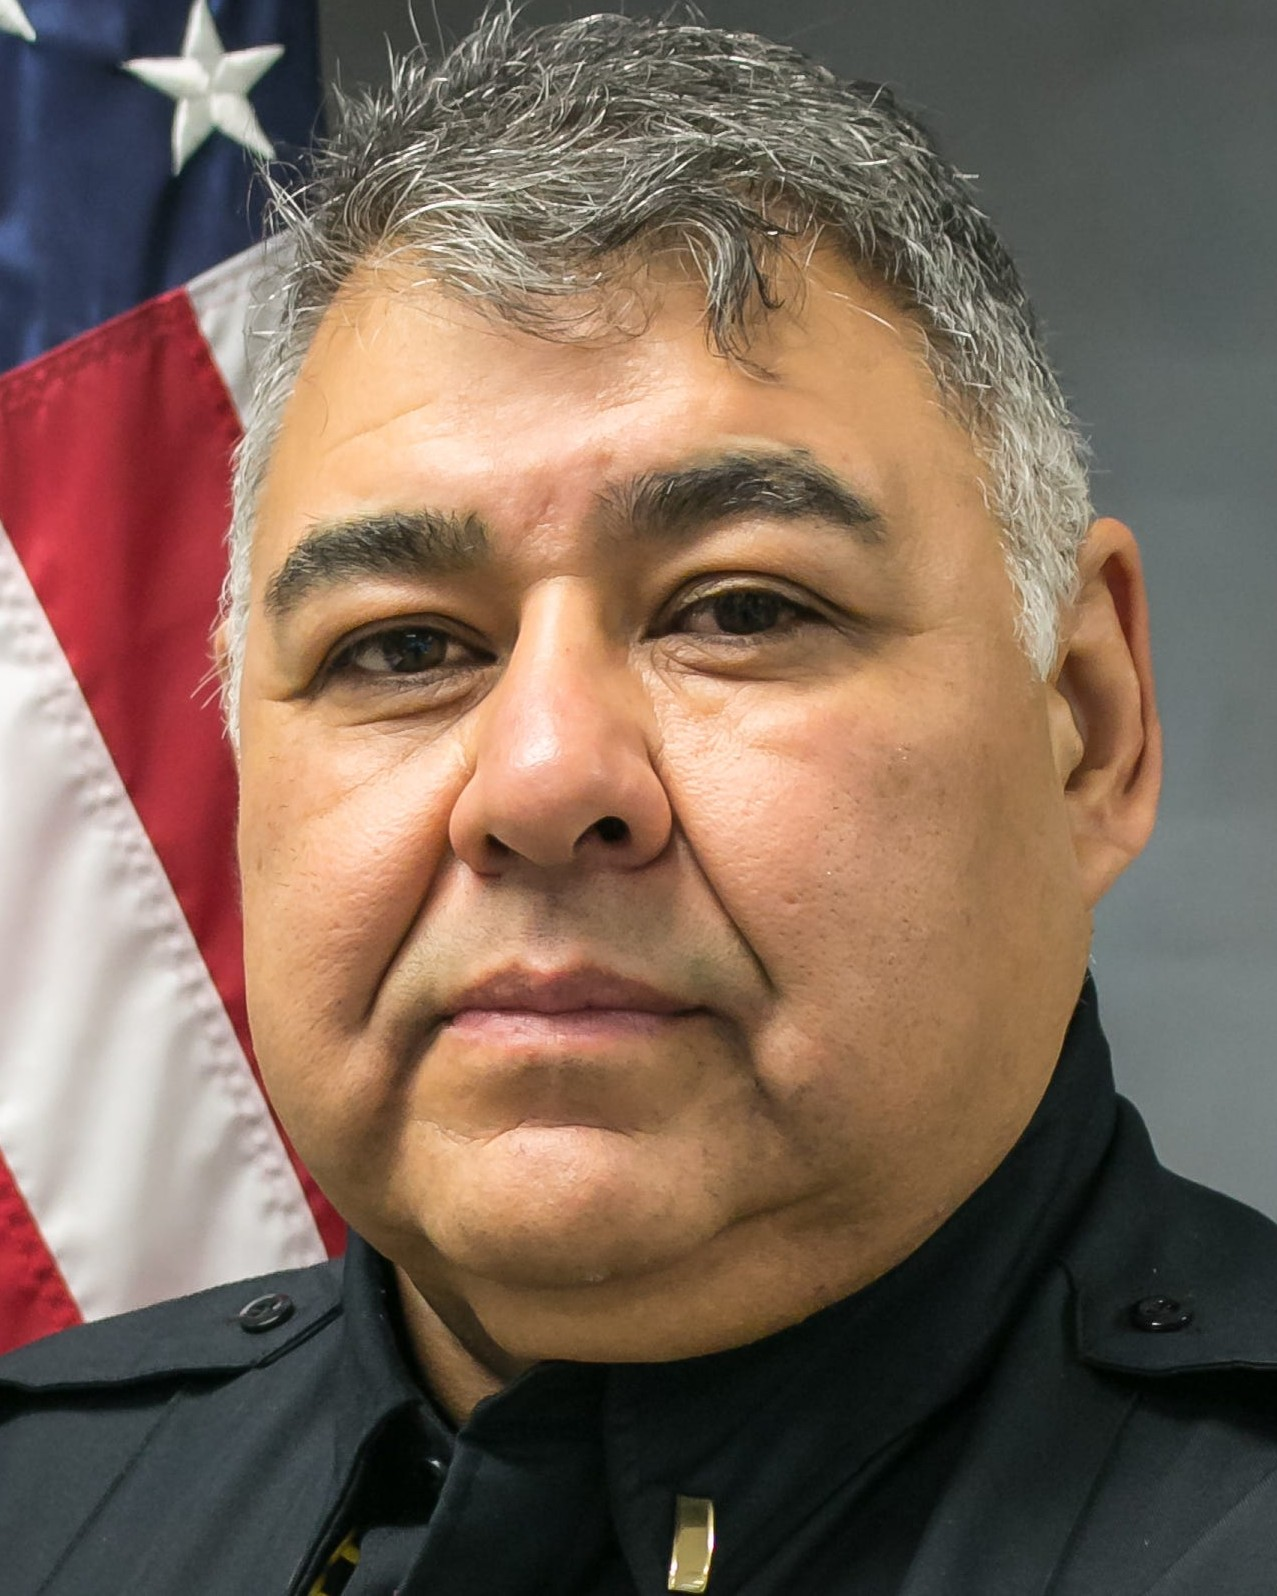 Lieutenant Bobby Almager | Corpus Christi International Airport Department of Public Safety, Texas